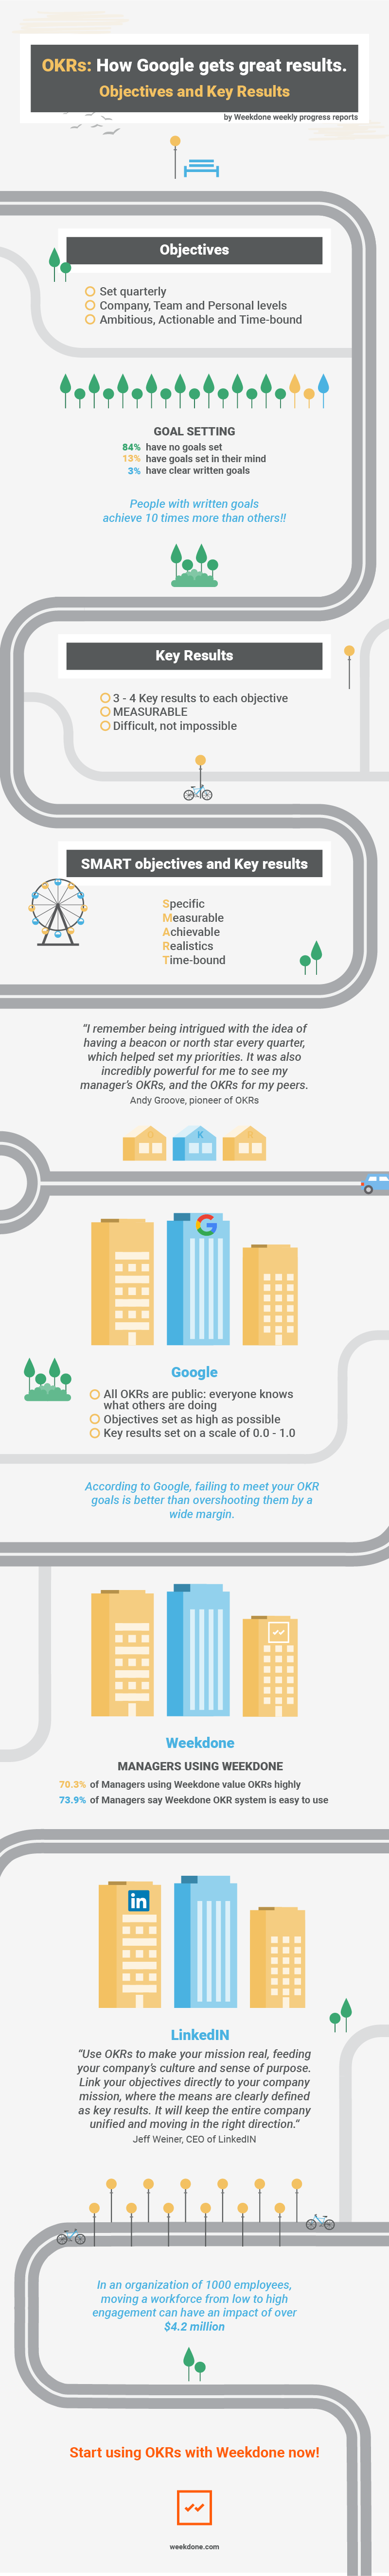 How Google and Others use OKRs [Infographic] - Weekdone